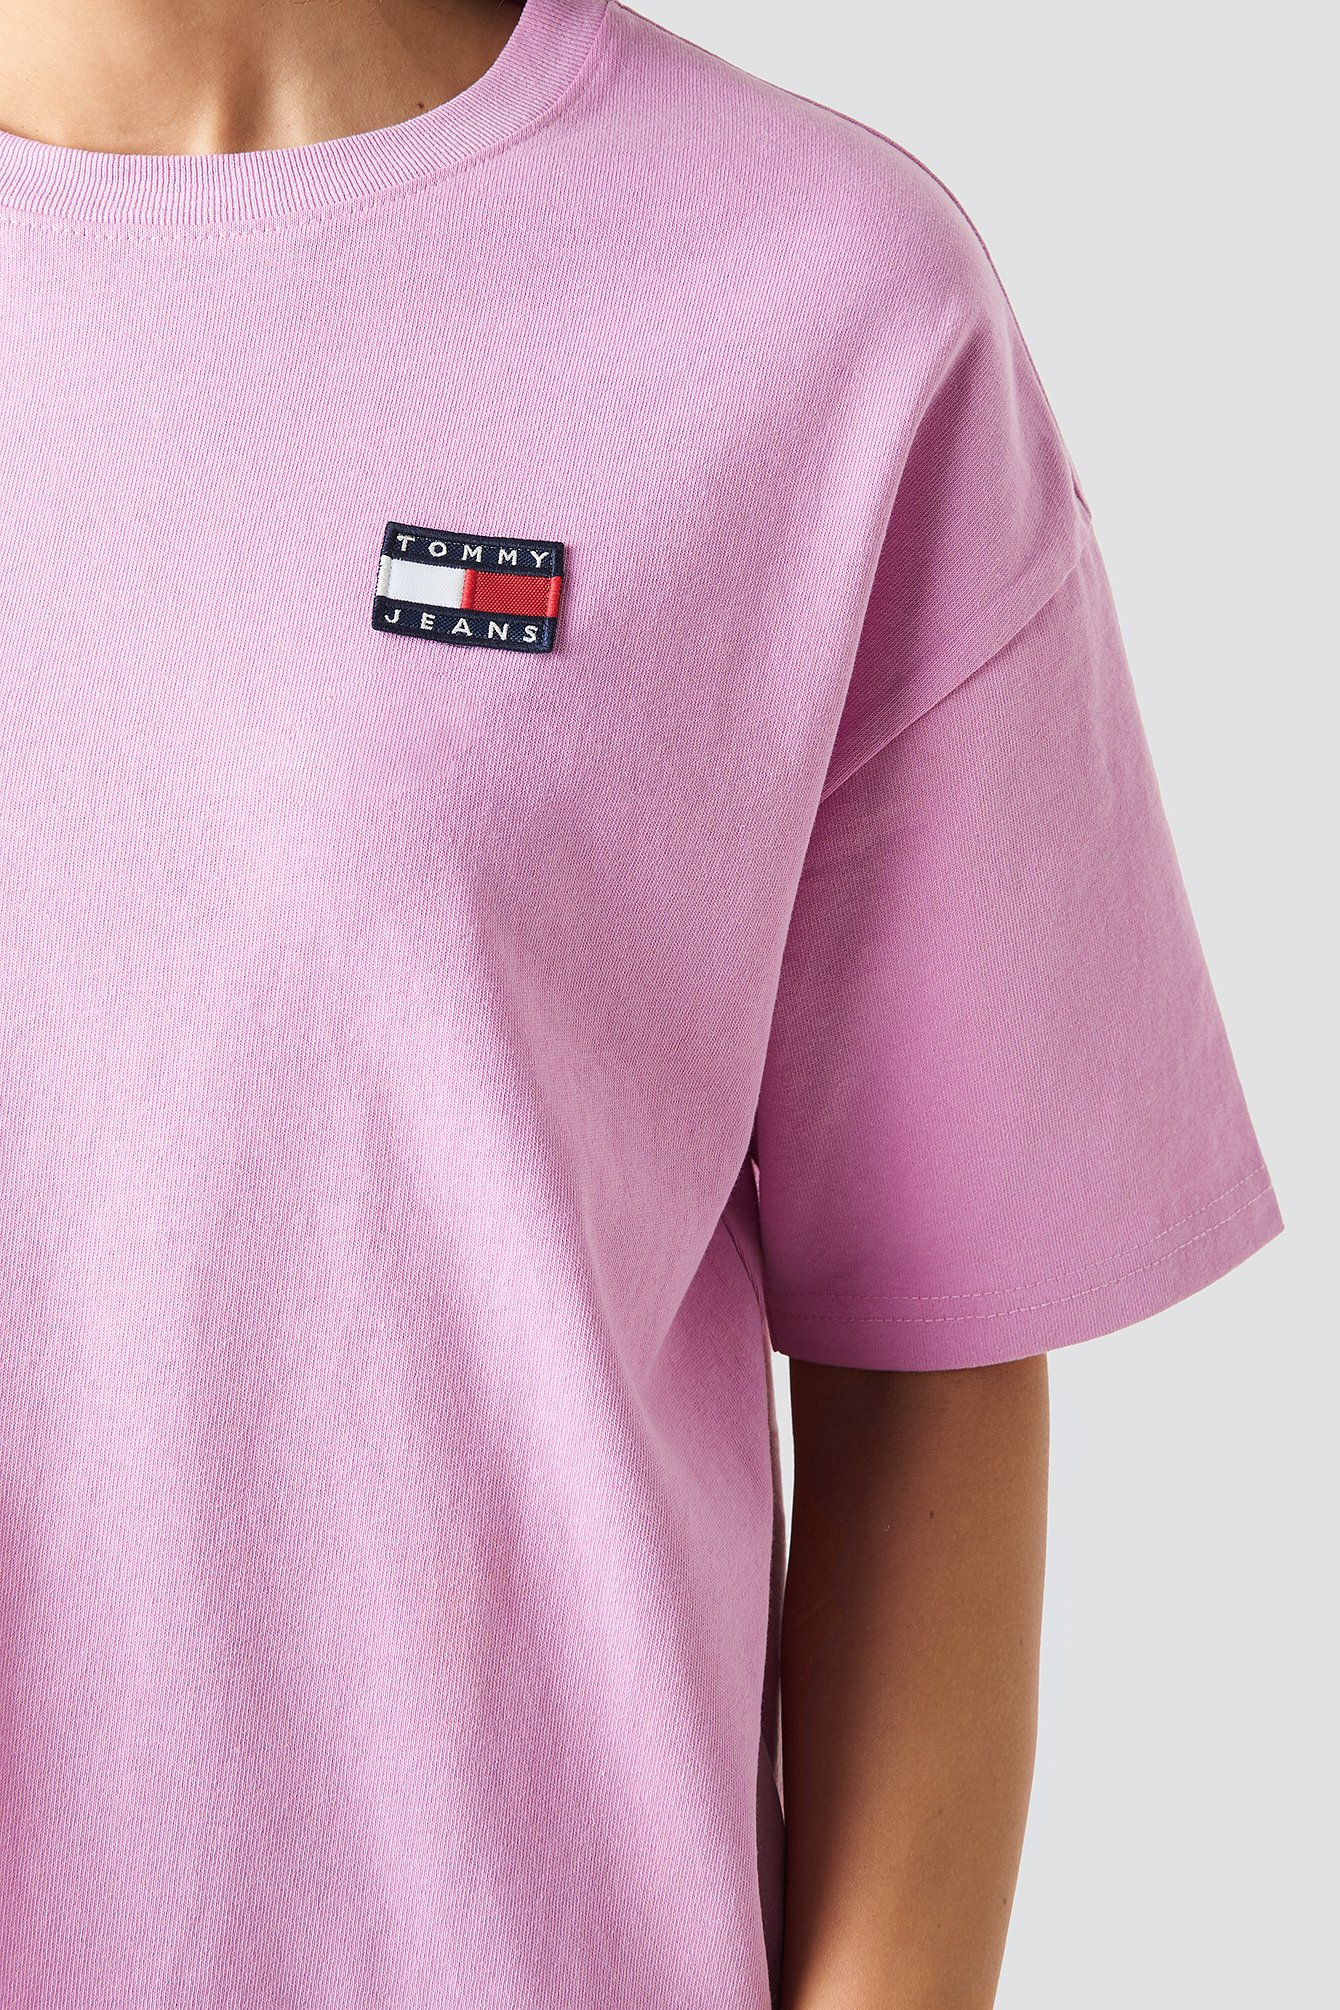 Tommy Jeans Badge Tee NA-KD.COM